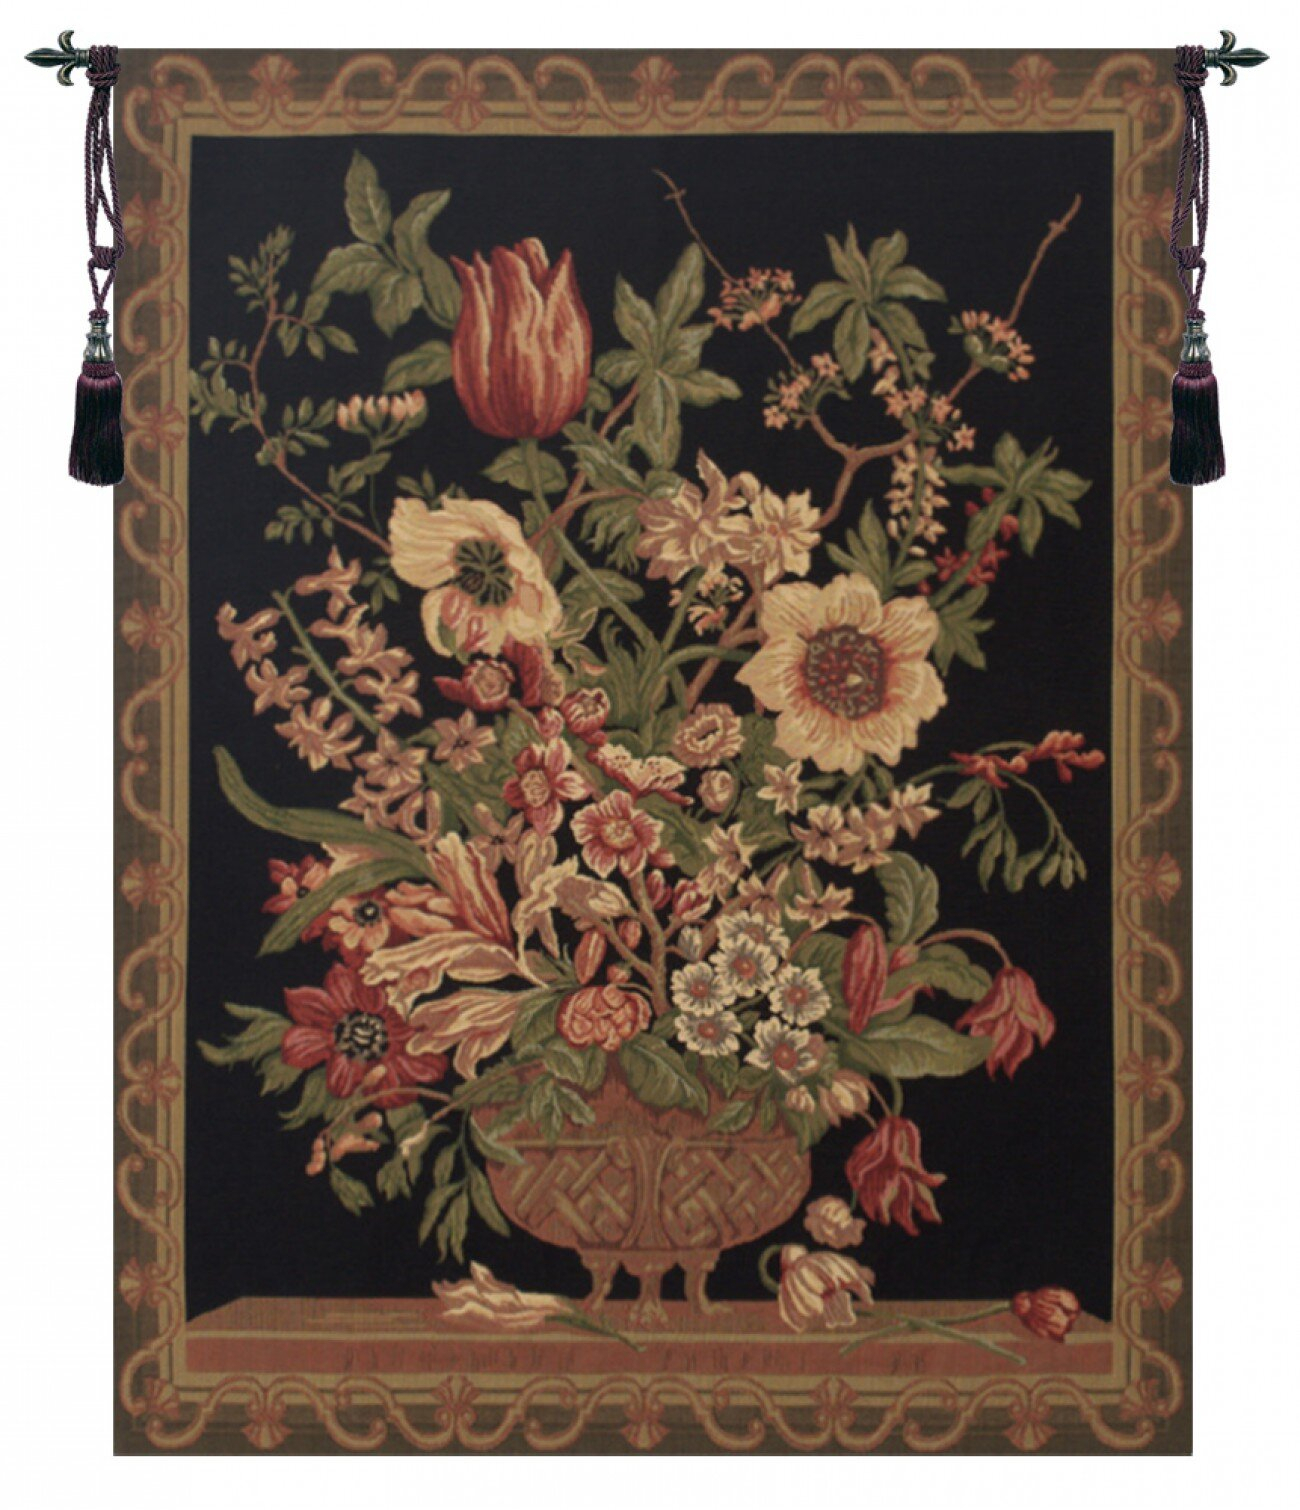 40 X 60 Art Tapestries You'll Love In 2021 | Wayfair Inside Best And Newest Blended Fabric Pheasant And Doe European Tapestries Wall Hangings (View 3 of 20)